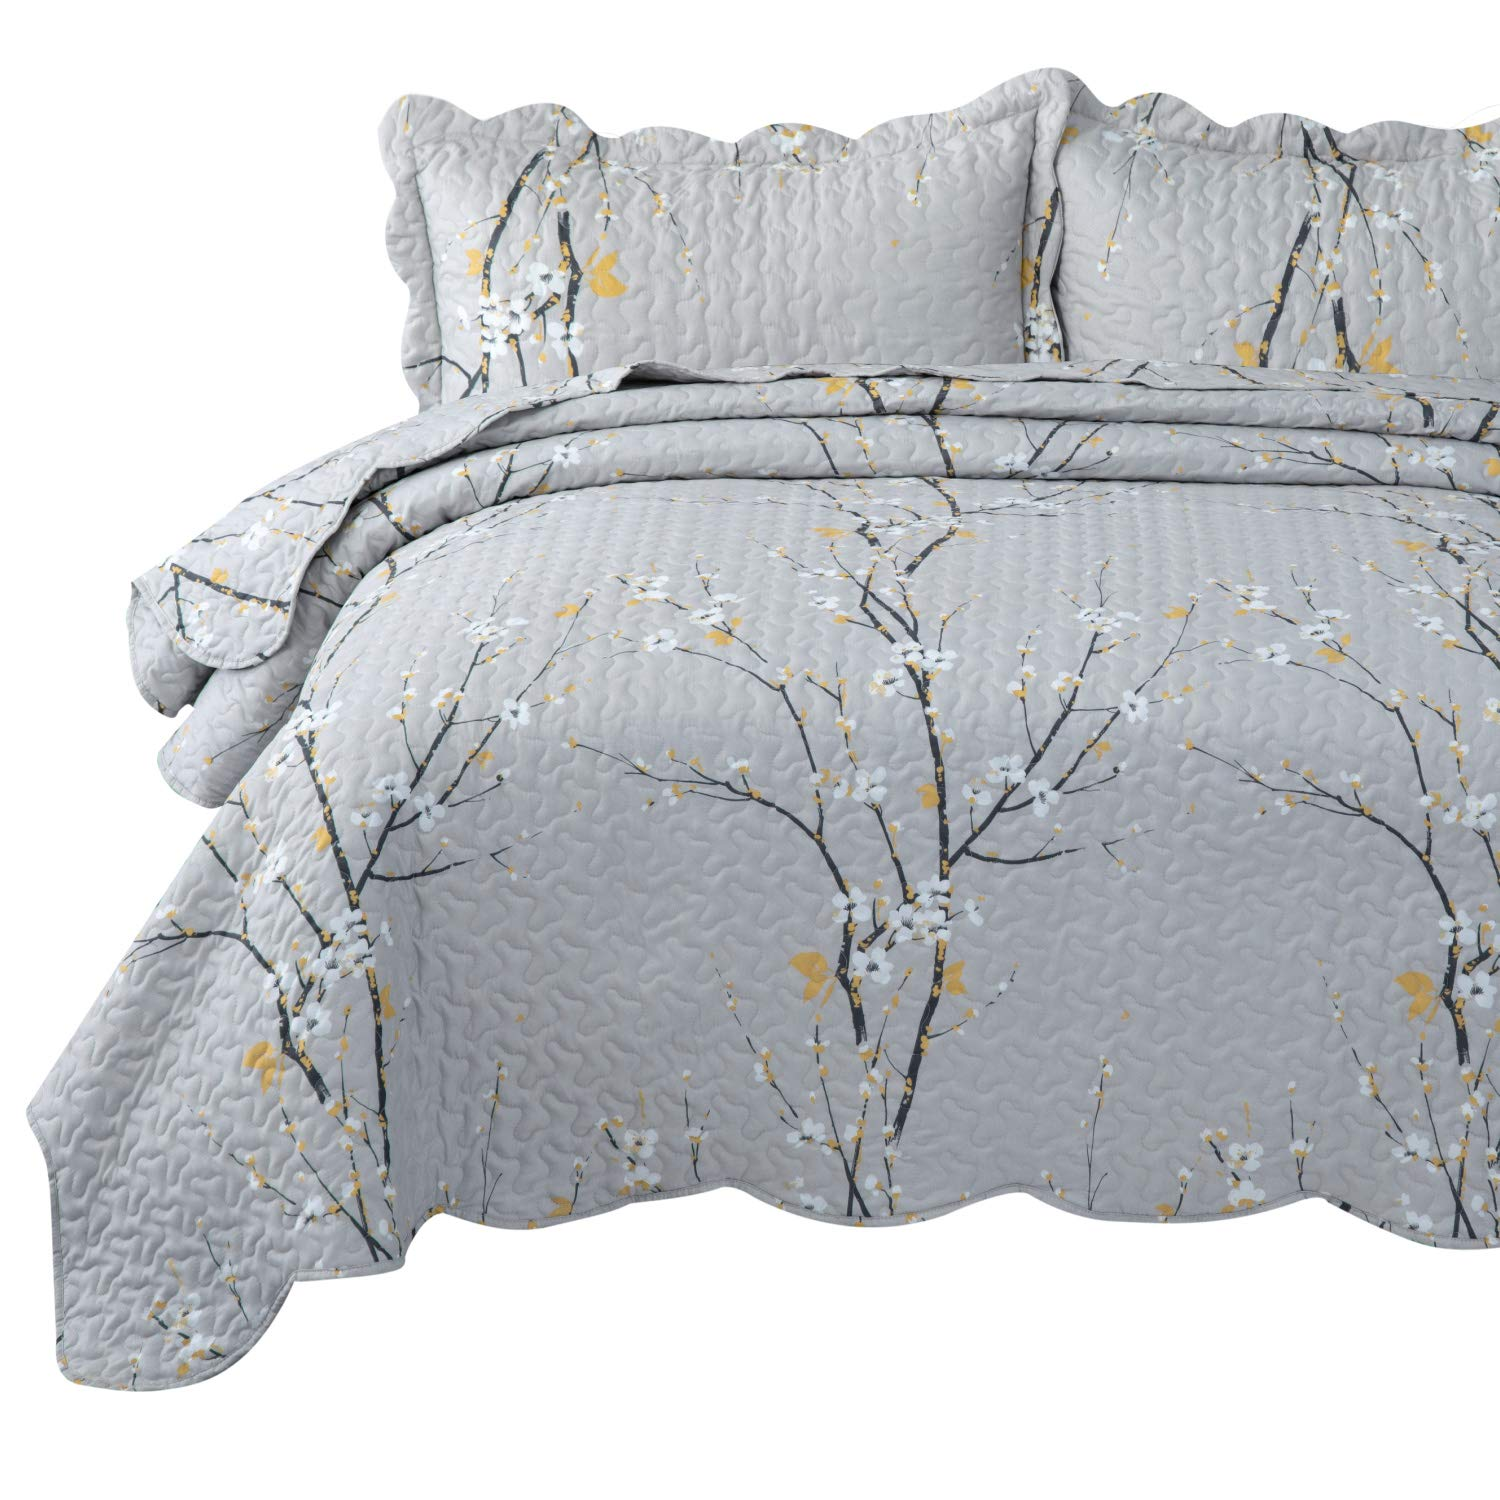 Bedsure Plum Blossom Pattern King Size(106''x96'') Bedspread Quilt, Lightweight Coverlet Quilt for Spring and Summer, 1 Quilt and 2 Pillow Shams